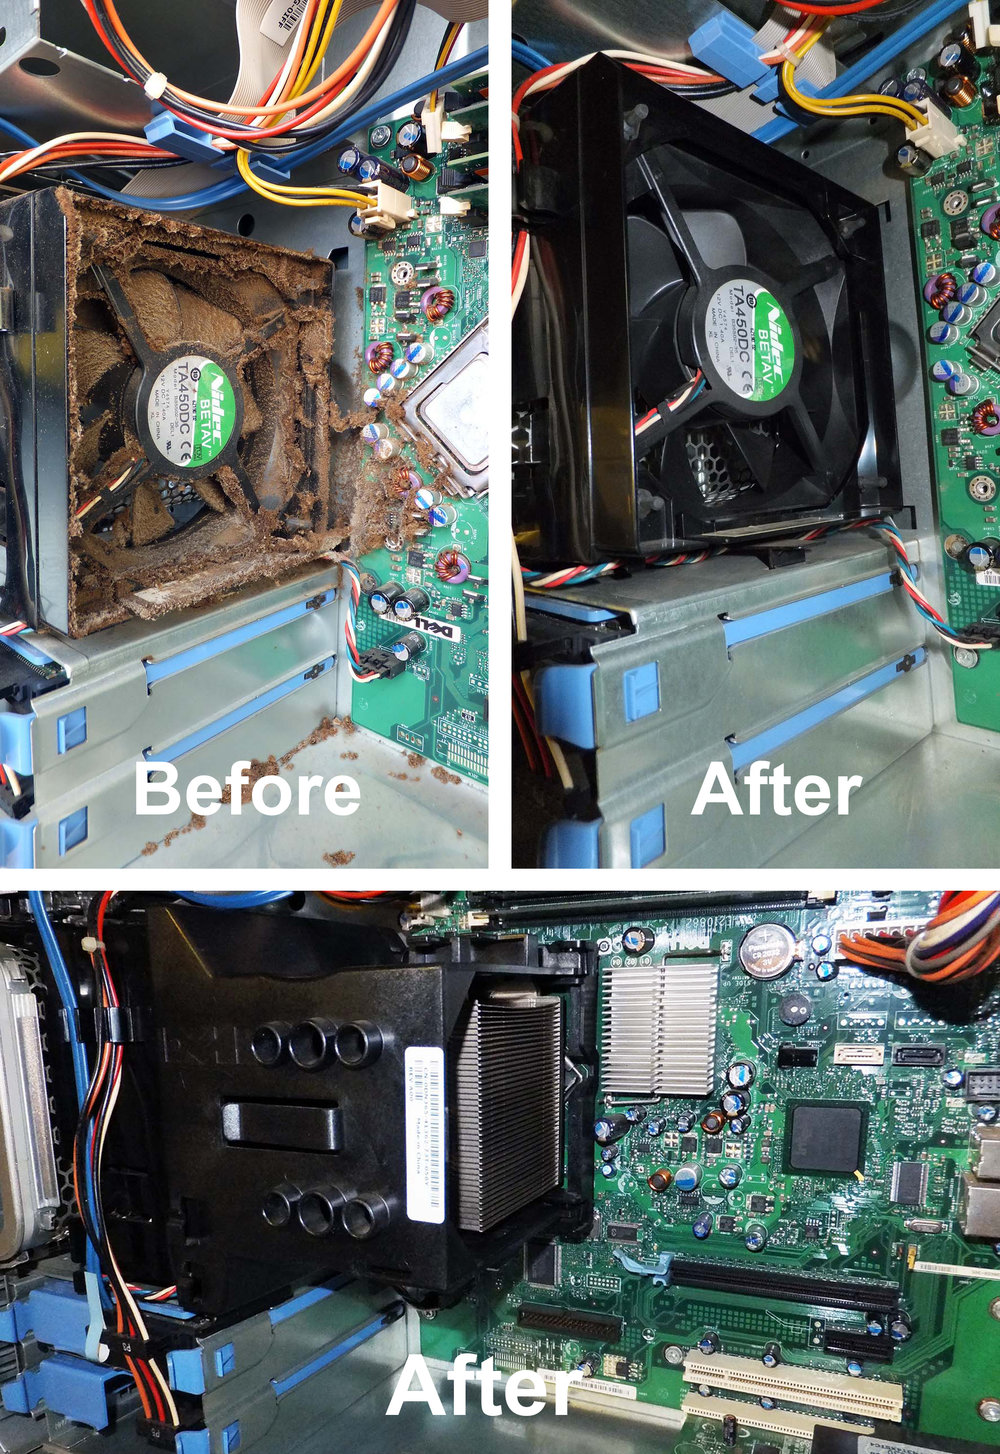 Dell-Before-After-white.jpg